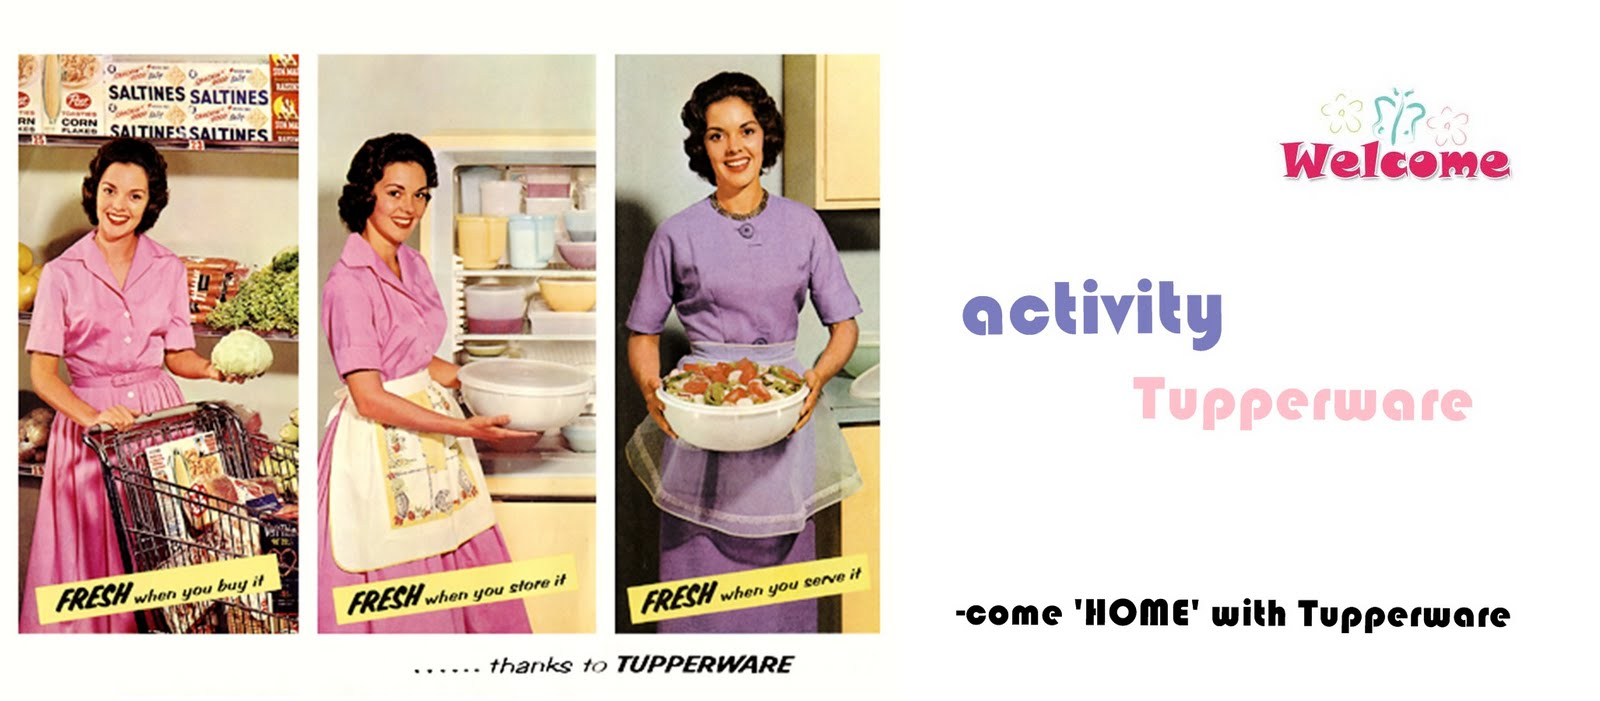 activity Tupperware